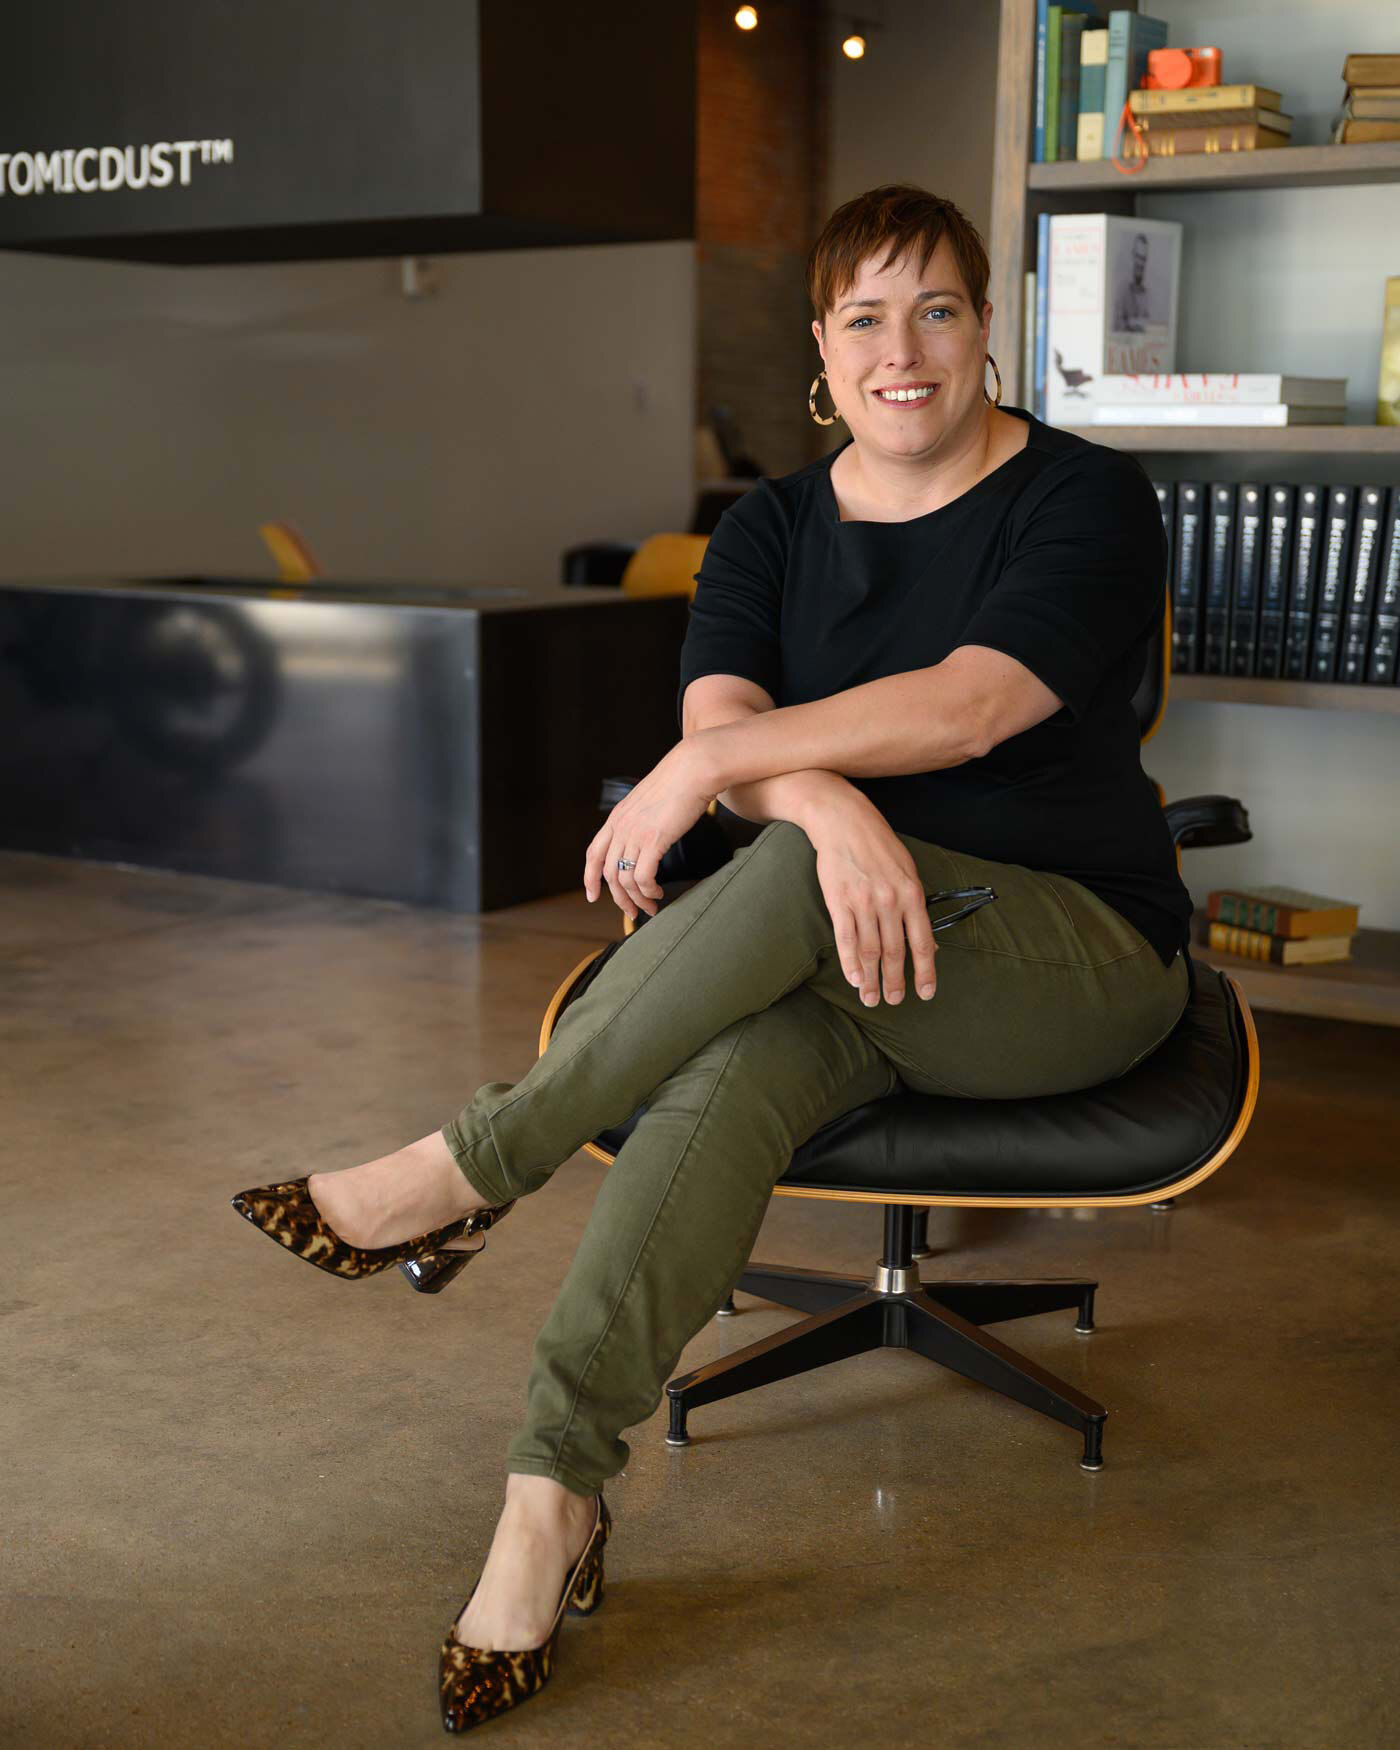 Holly Sinclair sits on an Eames chair in the Atomicdust office